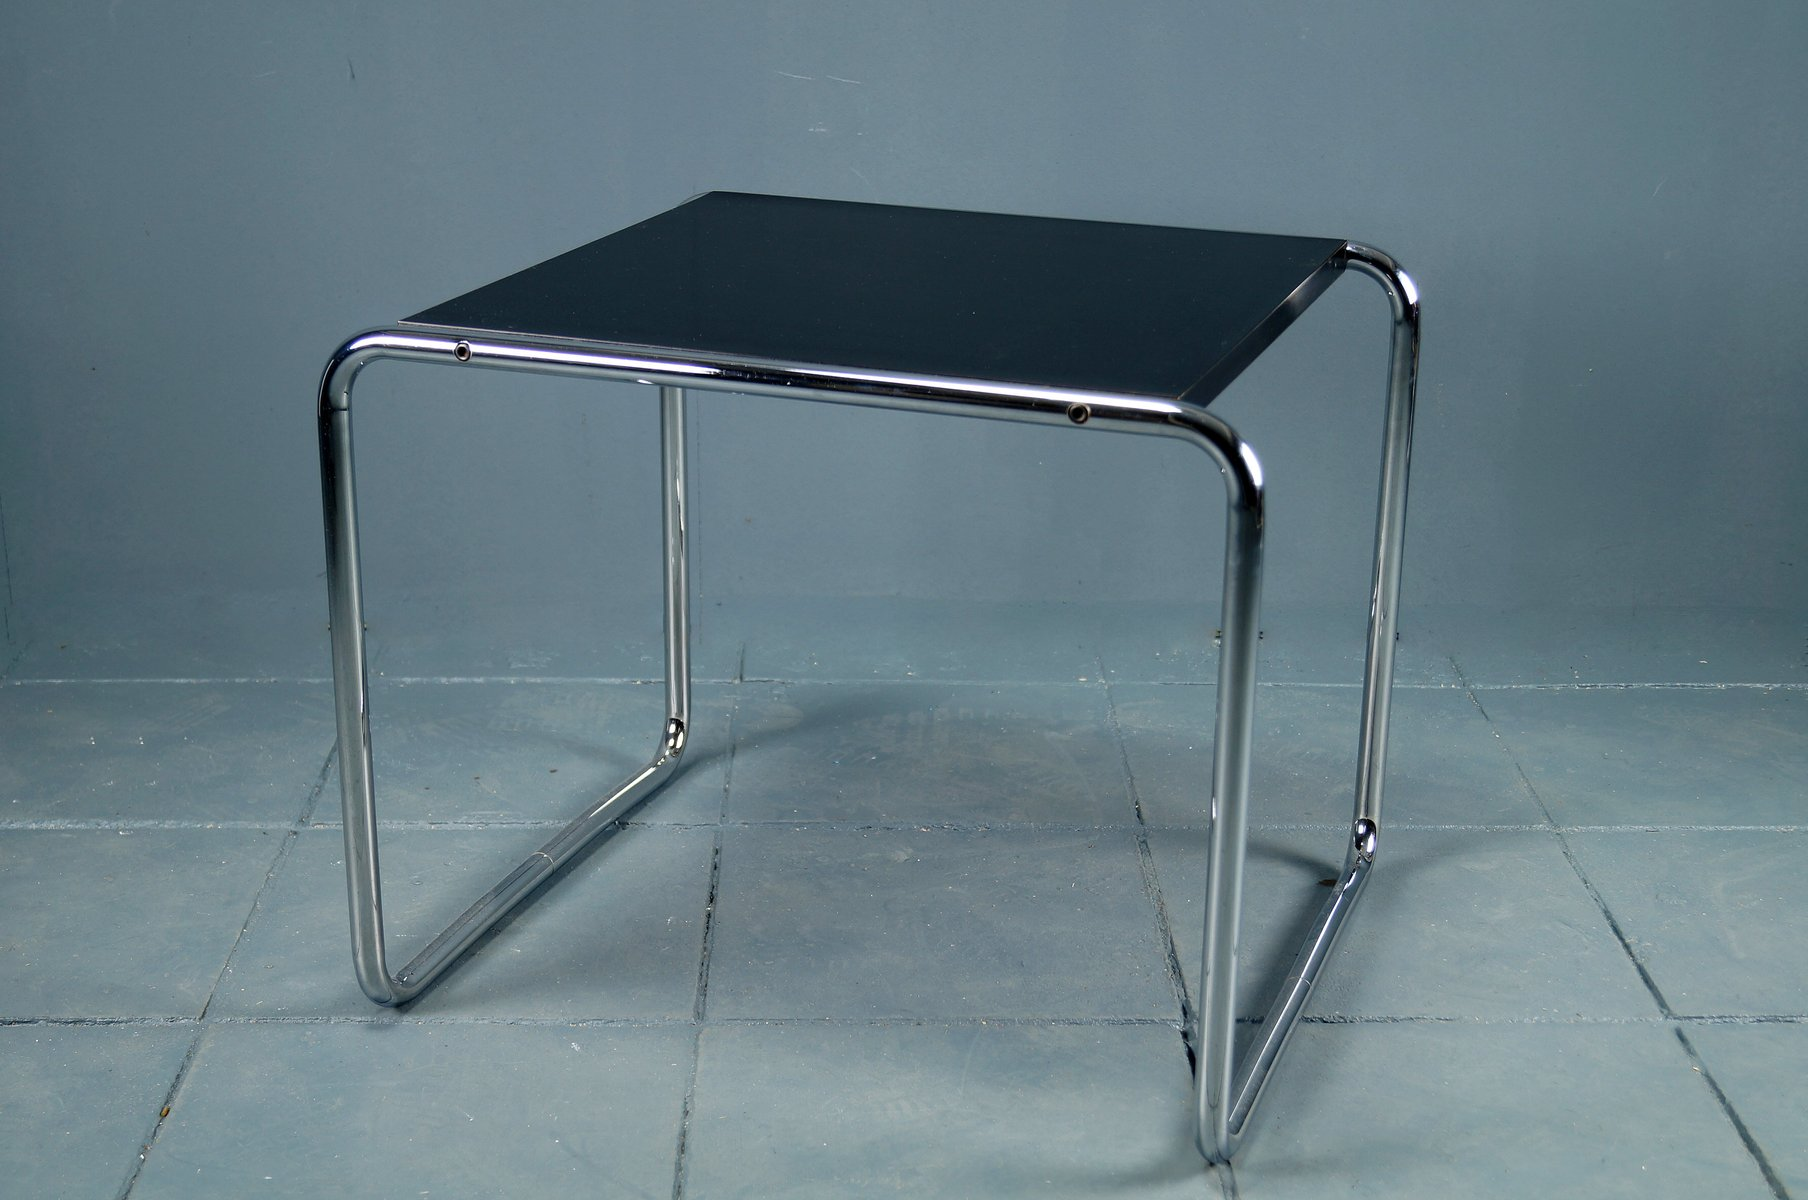 Vintage laccio side table by marcel breuer for gavina for sale at vintage laccio side table by marcel breuer for gavina geotapseo Images